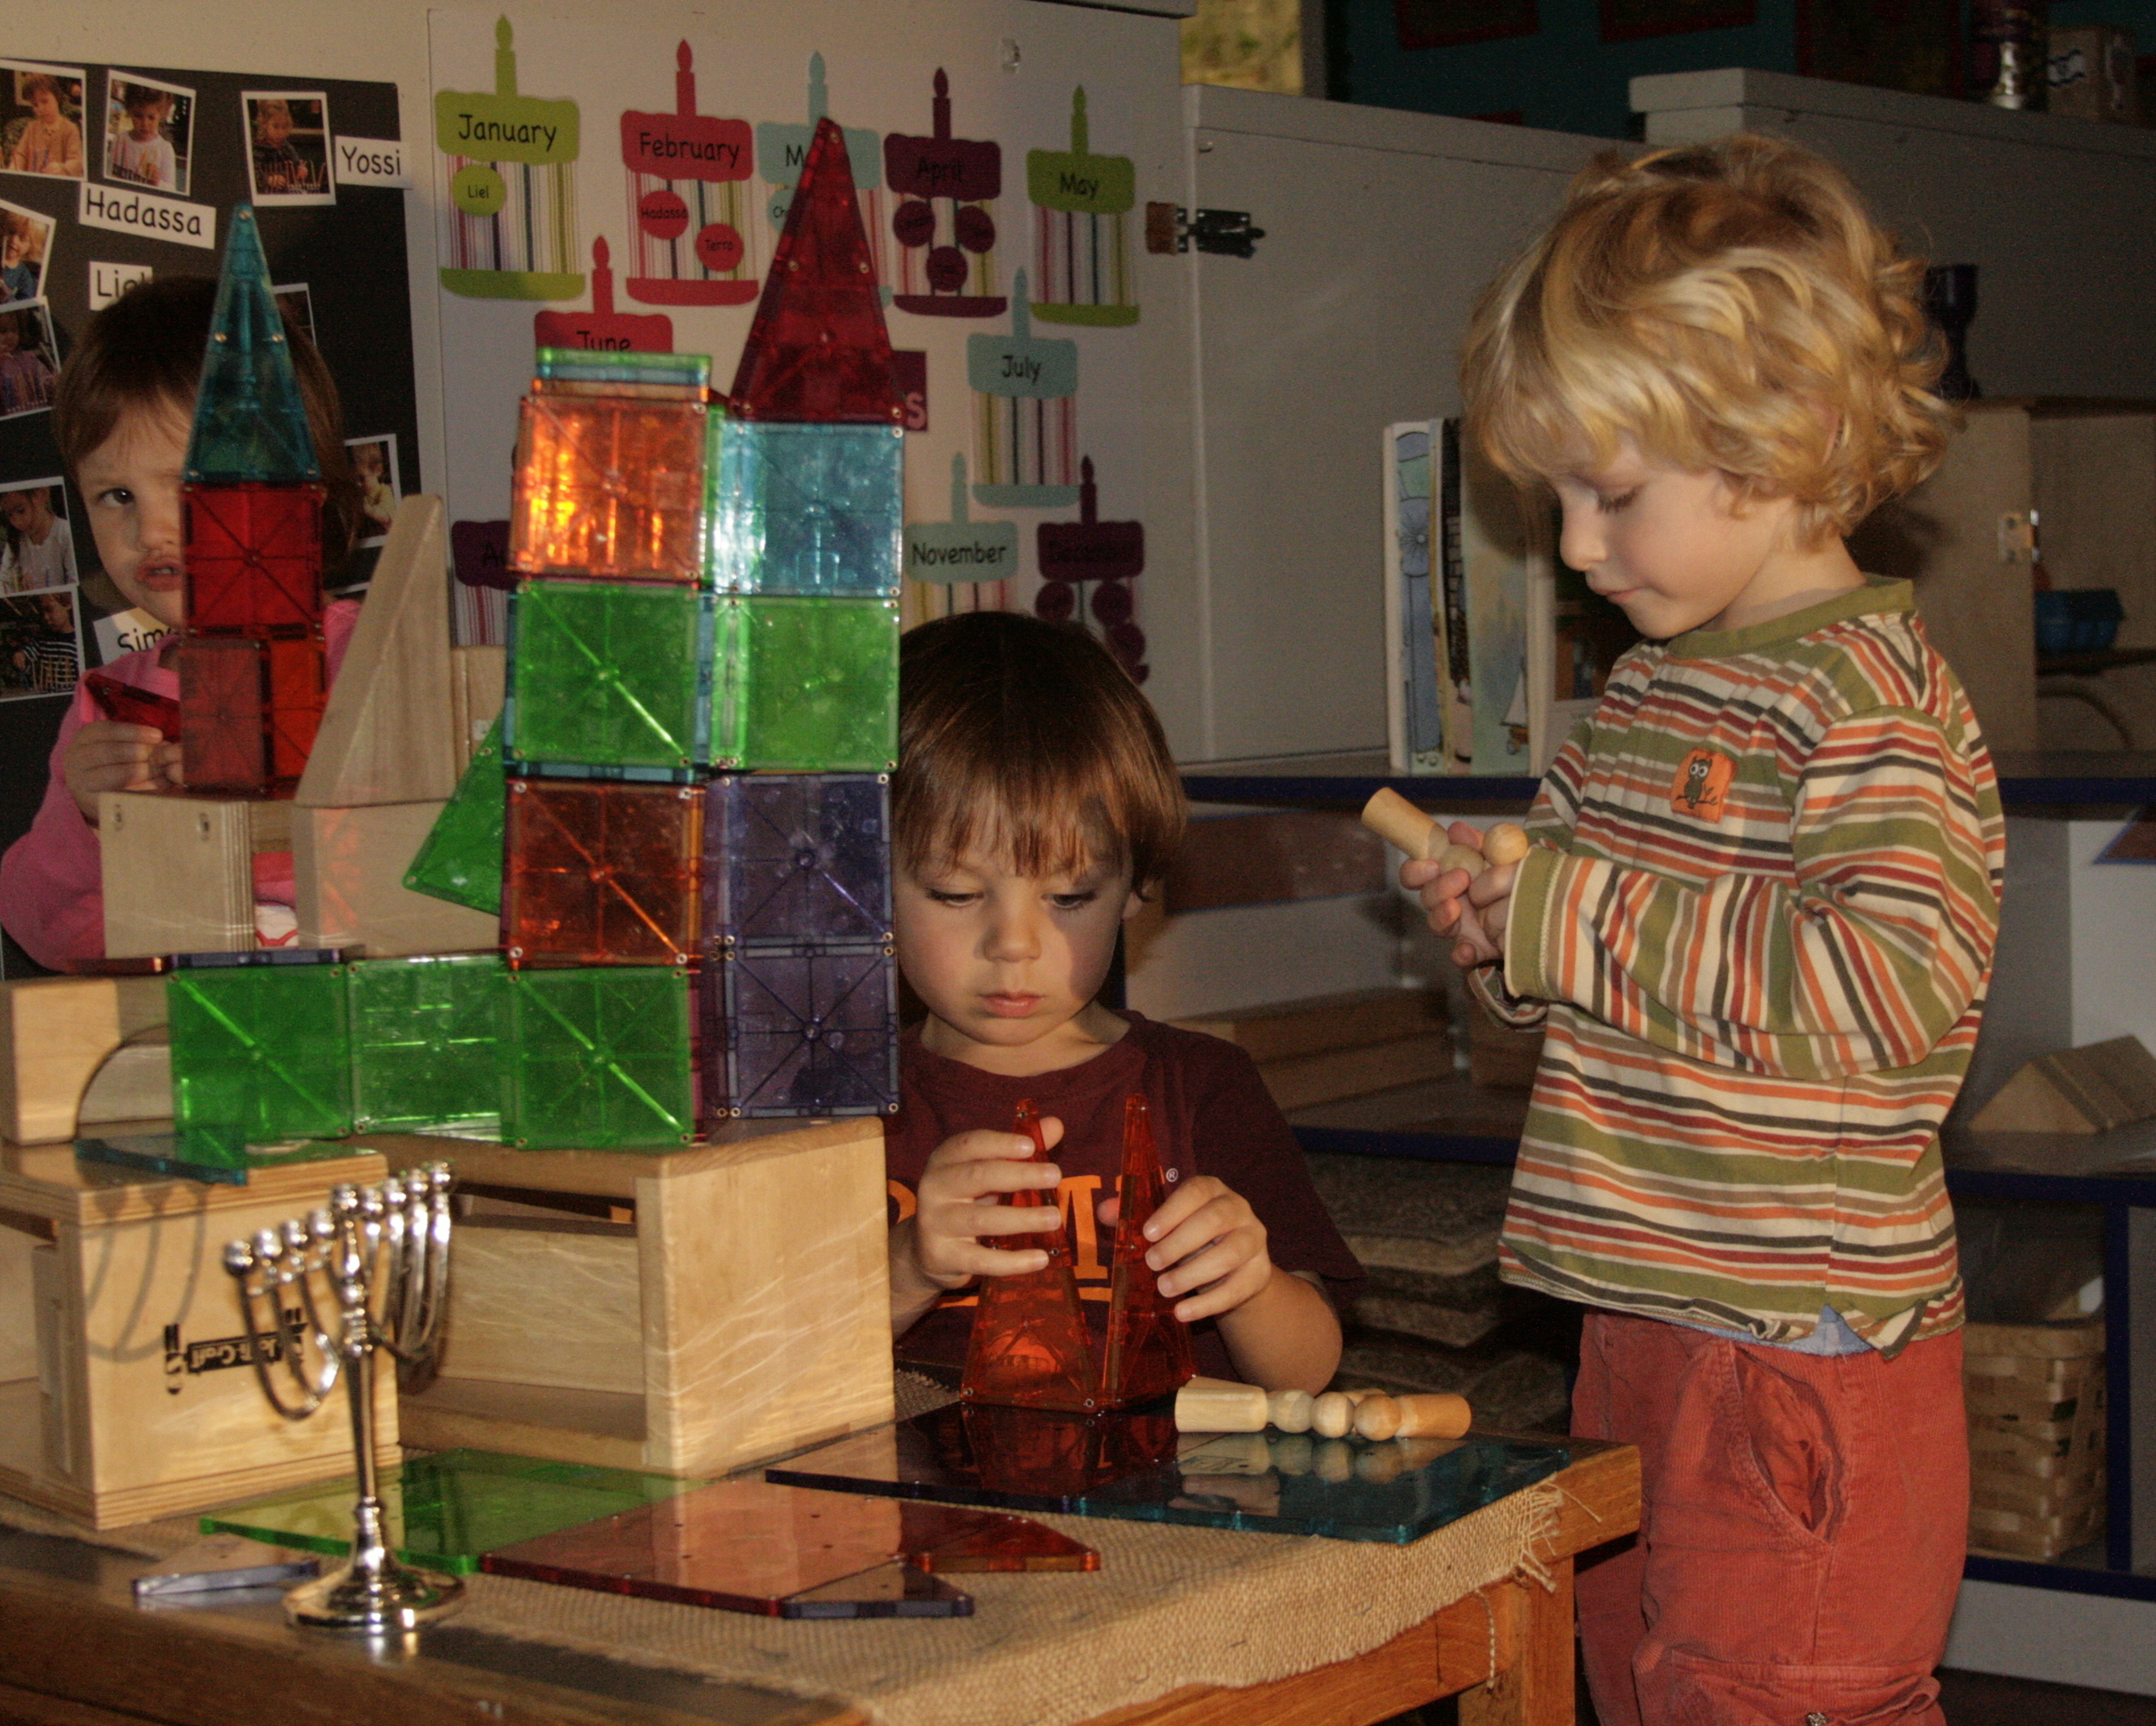 Explorer students explore light and shadow with the magna-tiles, blocks and a light projector.